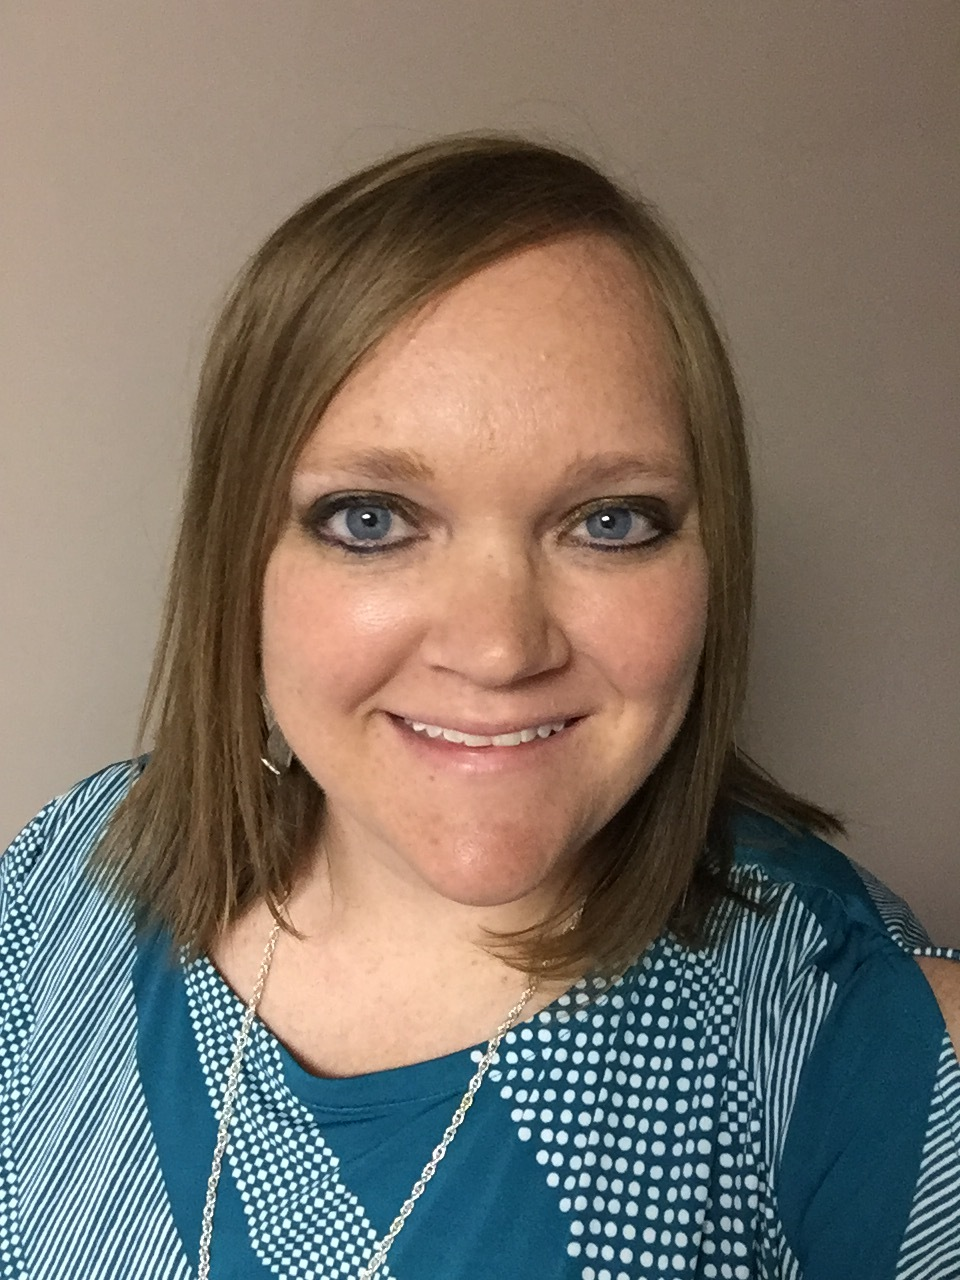 Amy Schroeder, North Region Operations Manager